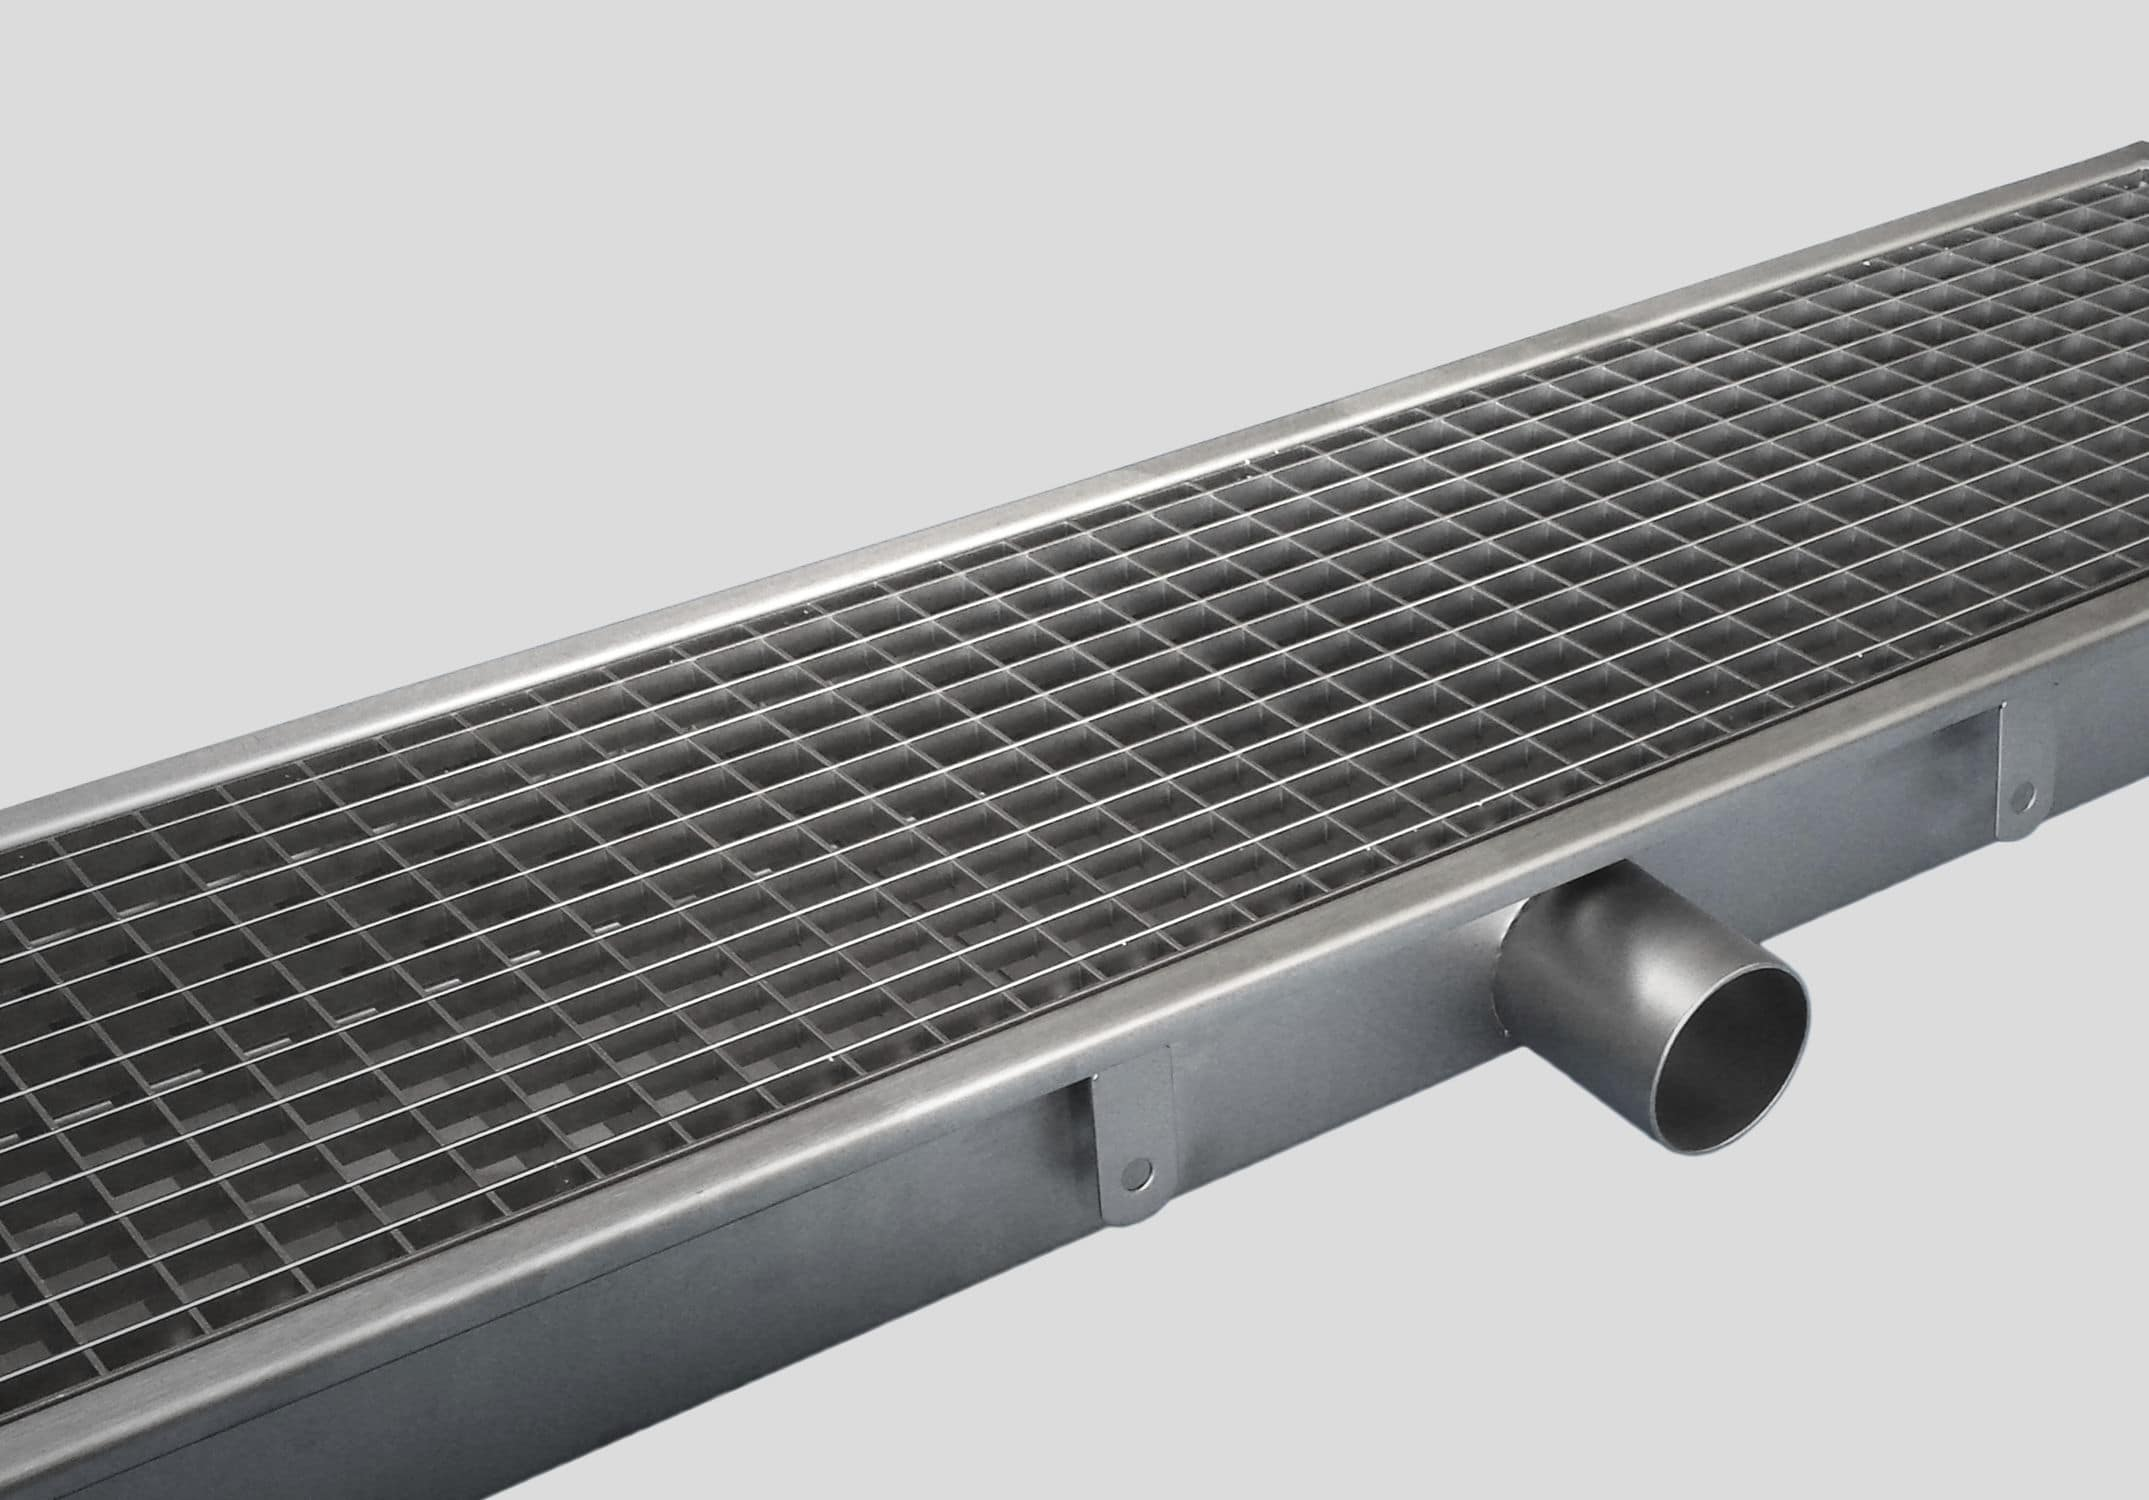 Stainless Steel Drainage Channel 0810 Inoxsystem S R L With